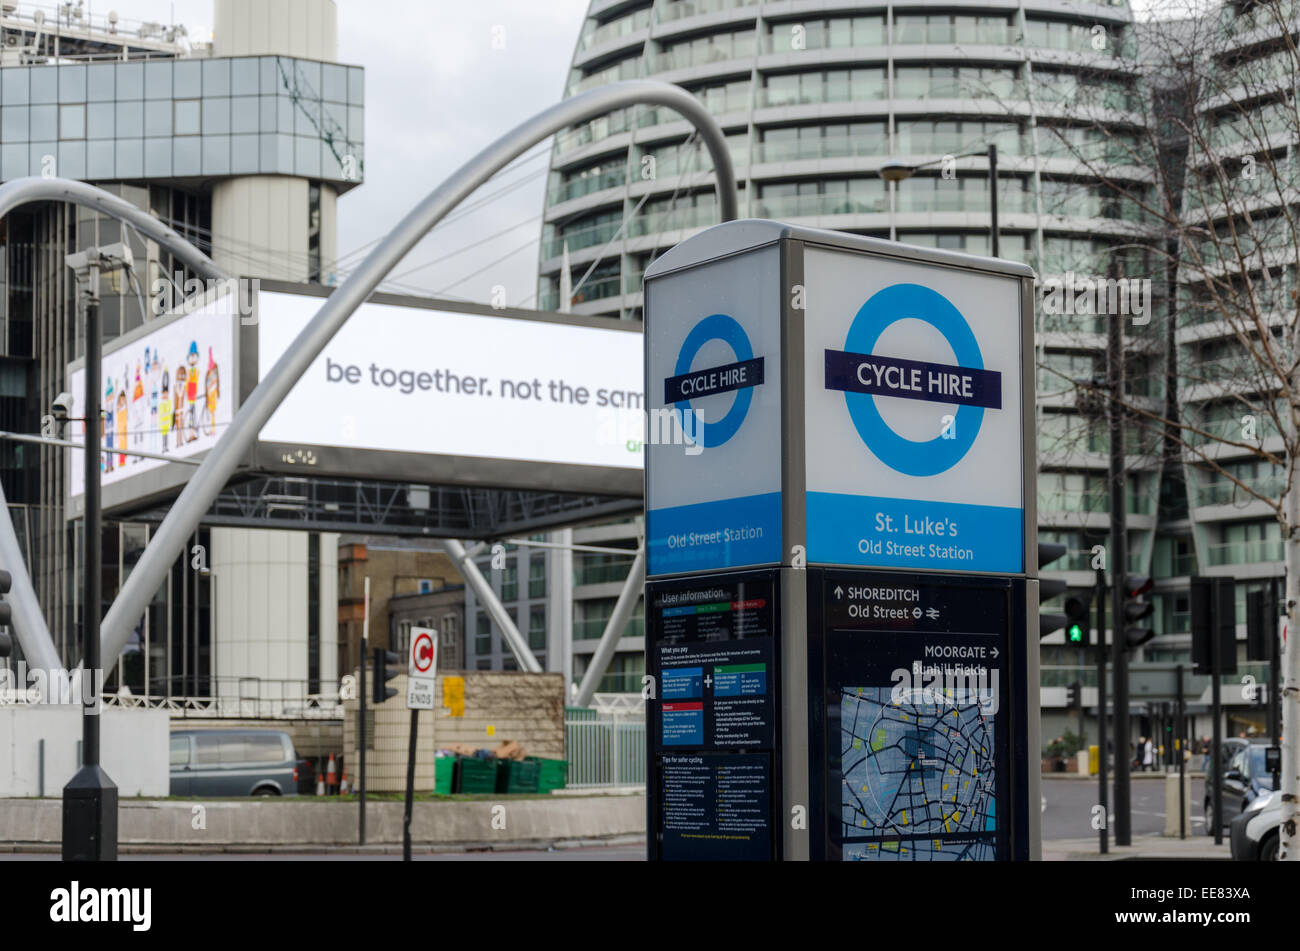 London Cycle Hire, locally known as 'Borris Bikes' at Old Street roundabout. London, UK - Stock Image